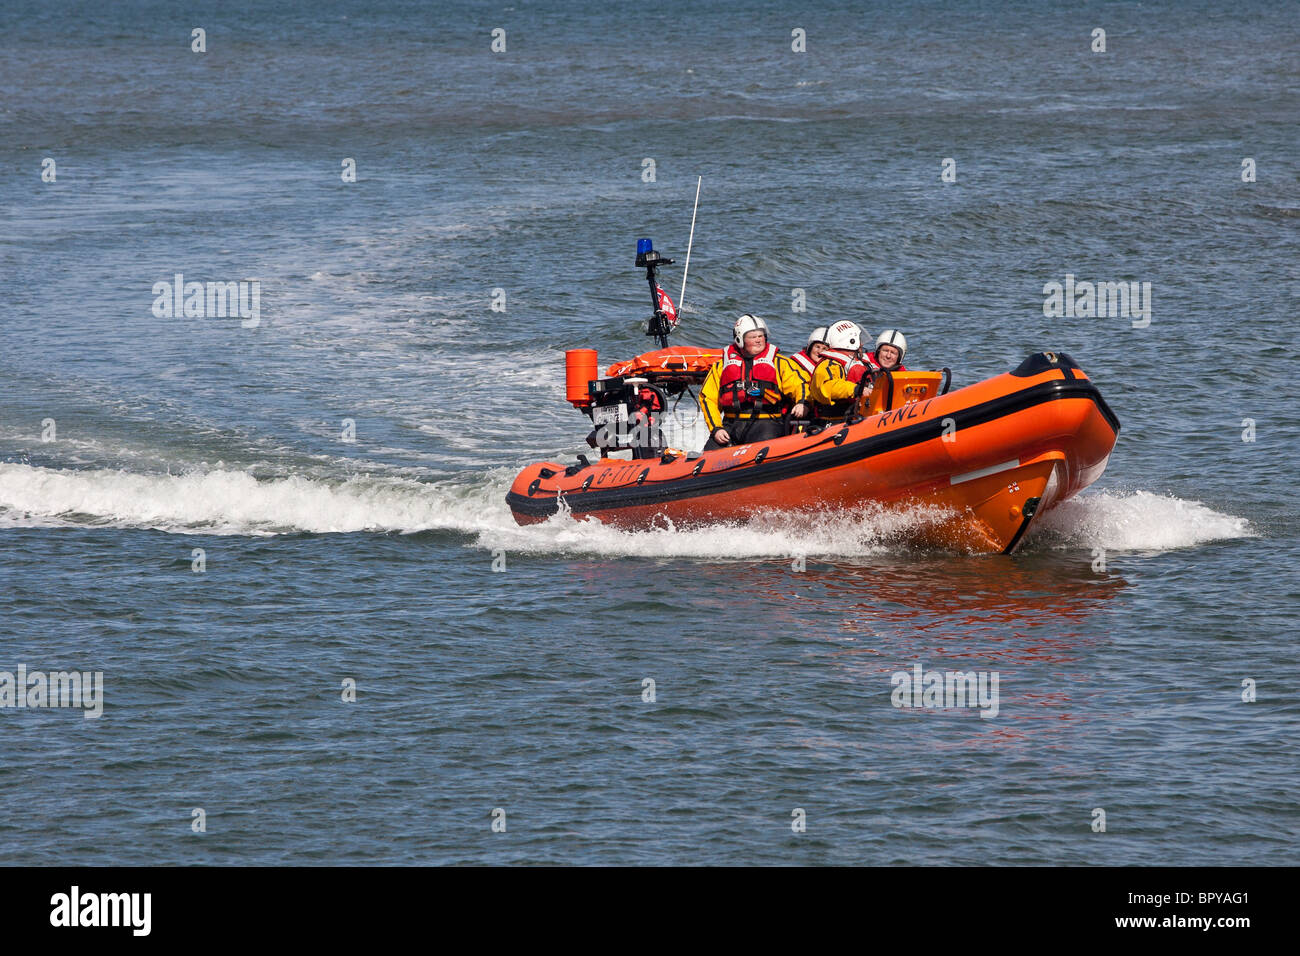 Atlantic 75 Class B RNLI Lifeboat, in the North Sea of Staithes, North Yorkshire. - Stock Image